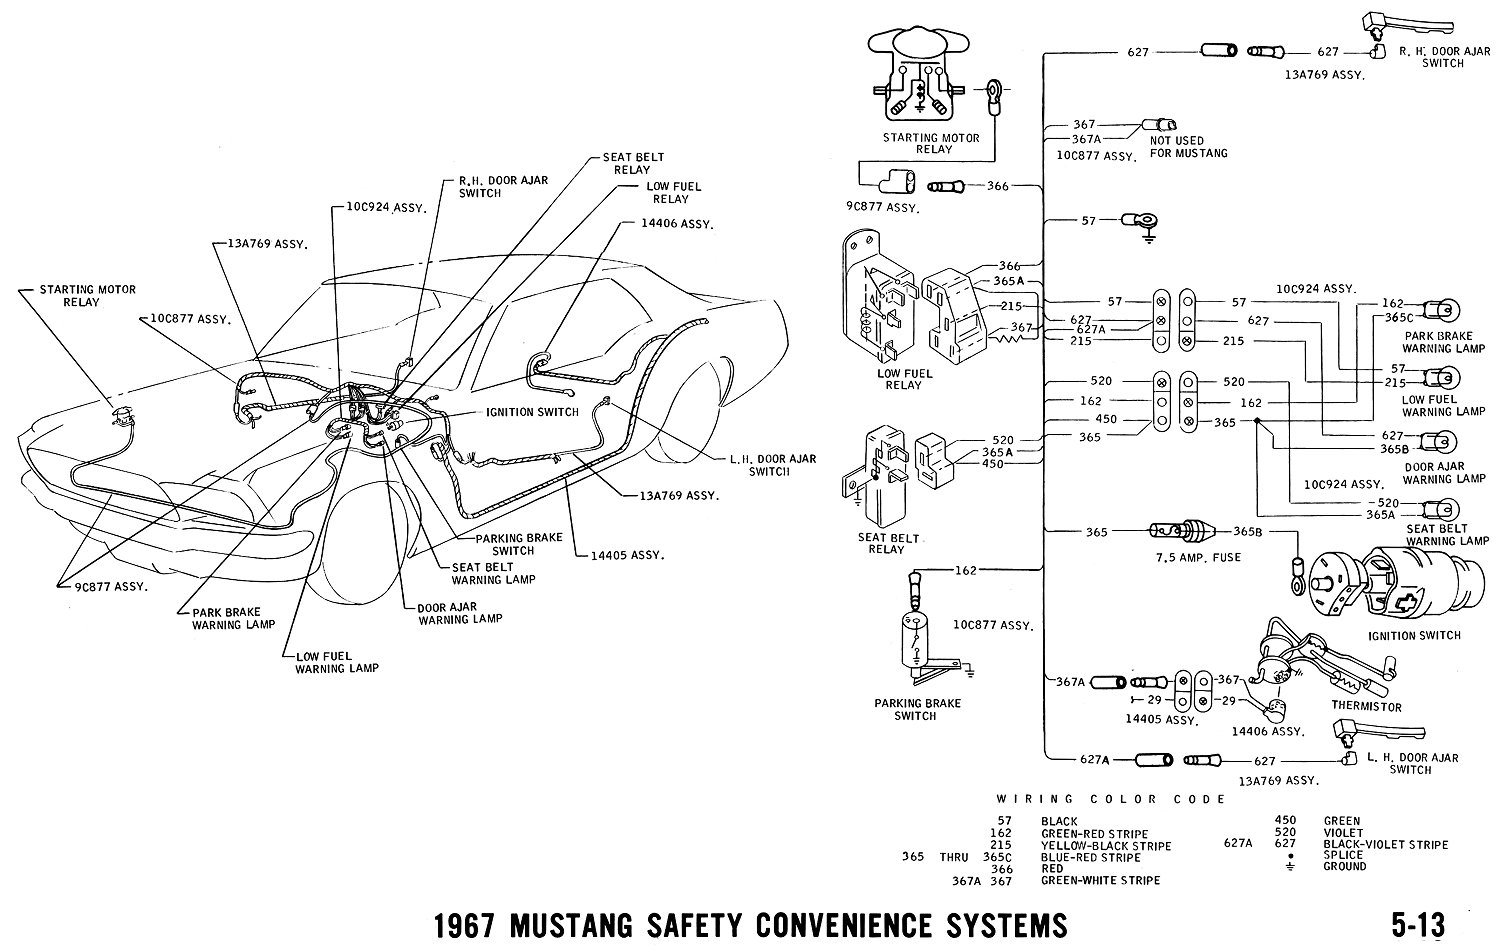 Amusing Voltage Ansul System Wiring Diagram During Operation as well Wiper Motor Wiring Diagram Chevrolet as well 1967 Ford Mustang Wiring Diagram also Mercedes Benz E320 Transmission Diagram moreover 1281011 1953 Turn Signal Wiring. on 67 mustang electrical